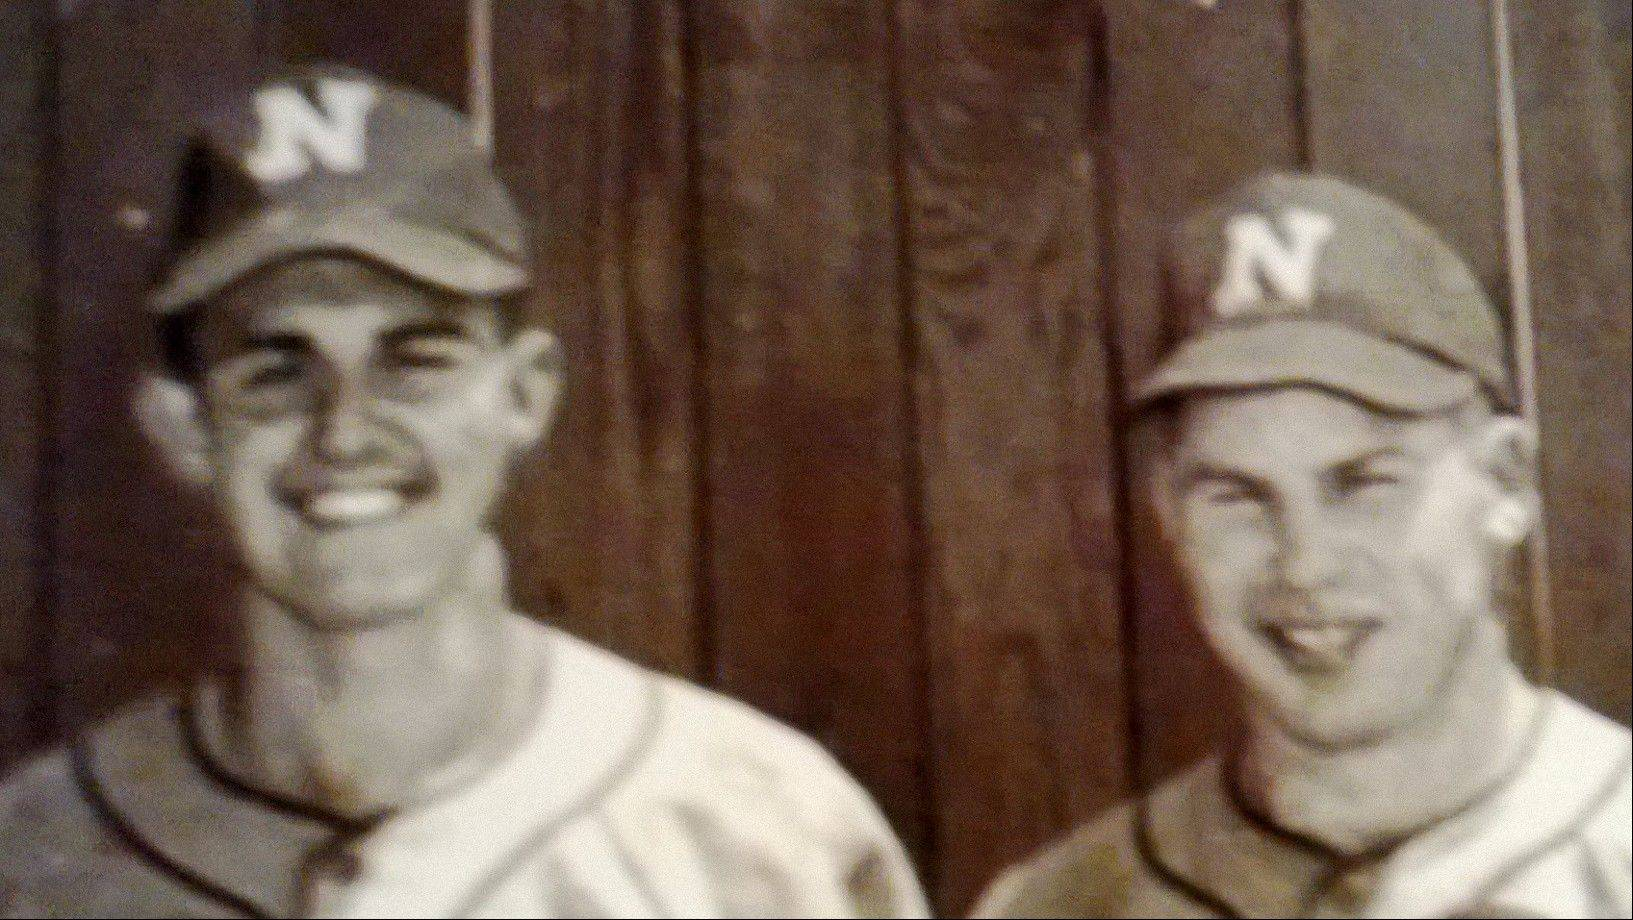 Former Lake County coaches Larry Leon, left, and Bill Eiserman played on the Northern Illinois University baseball teams that won back-to-back conference championships in 1950-51.